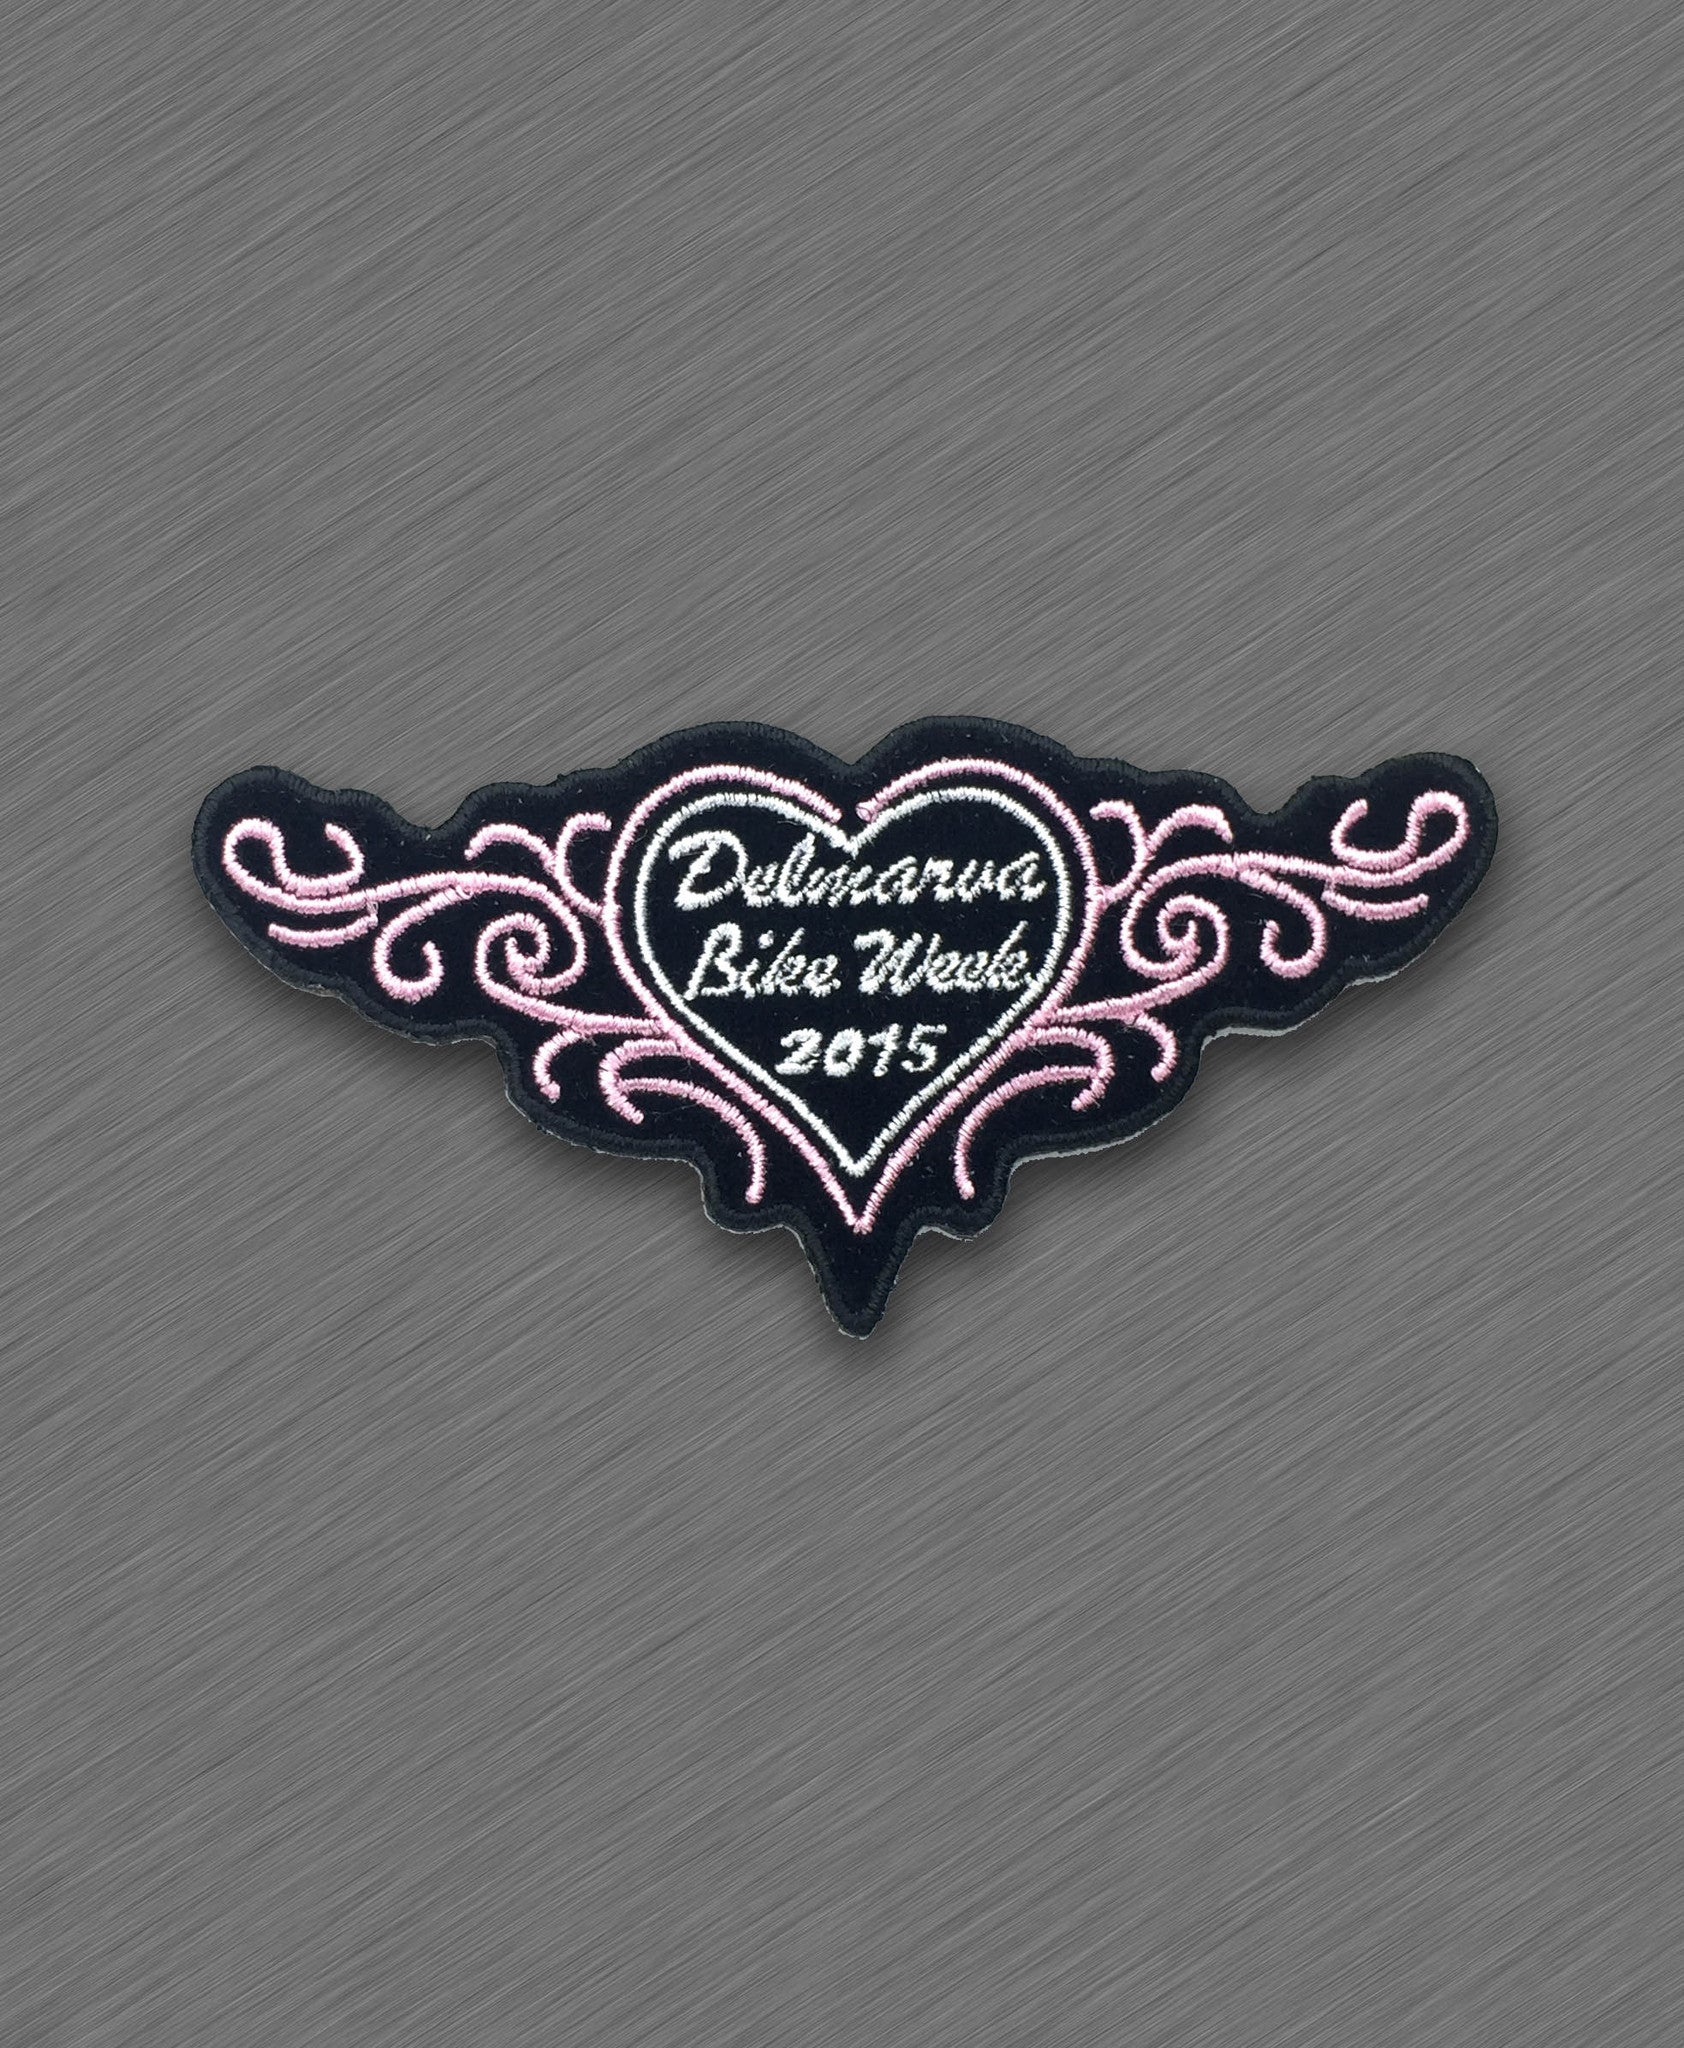 2015 Delmarva Pink Heart and Tribals Patch